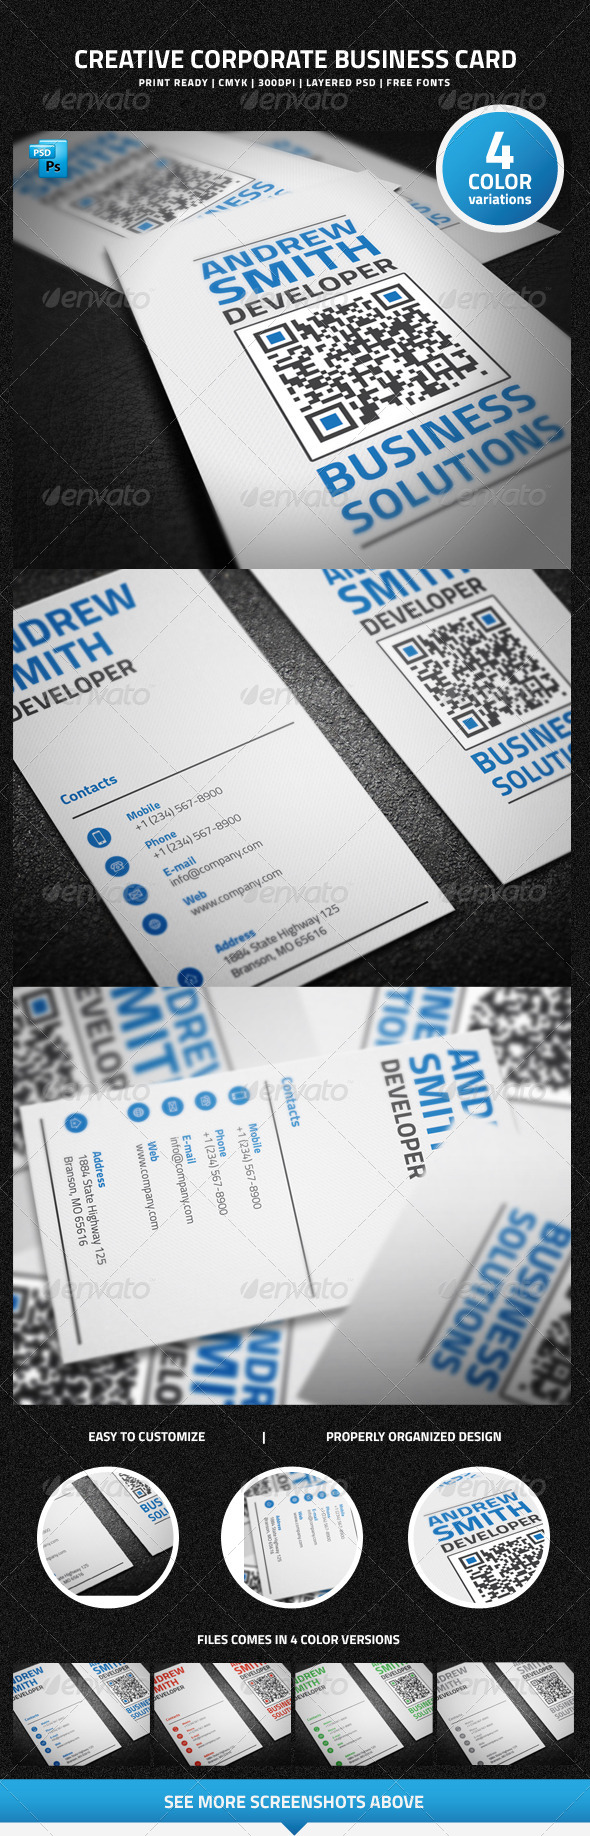 Creative Corporate Business Card  with QR Code - 20 - Creative Business Cards